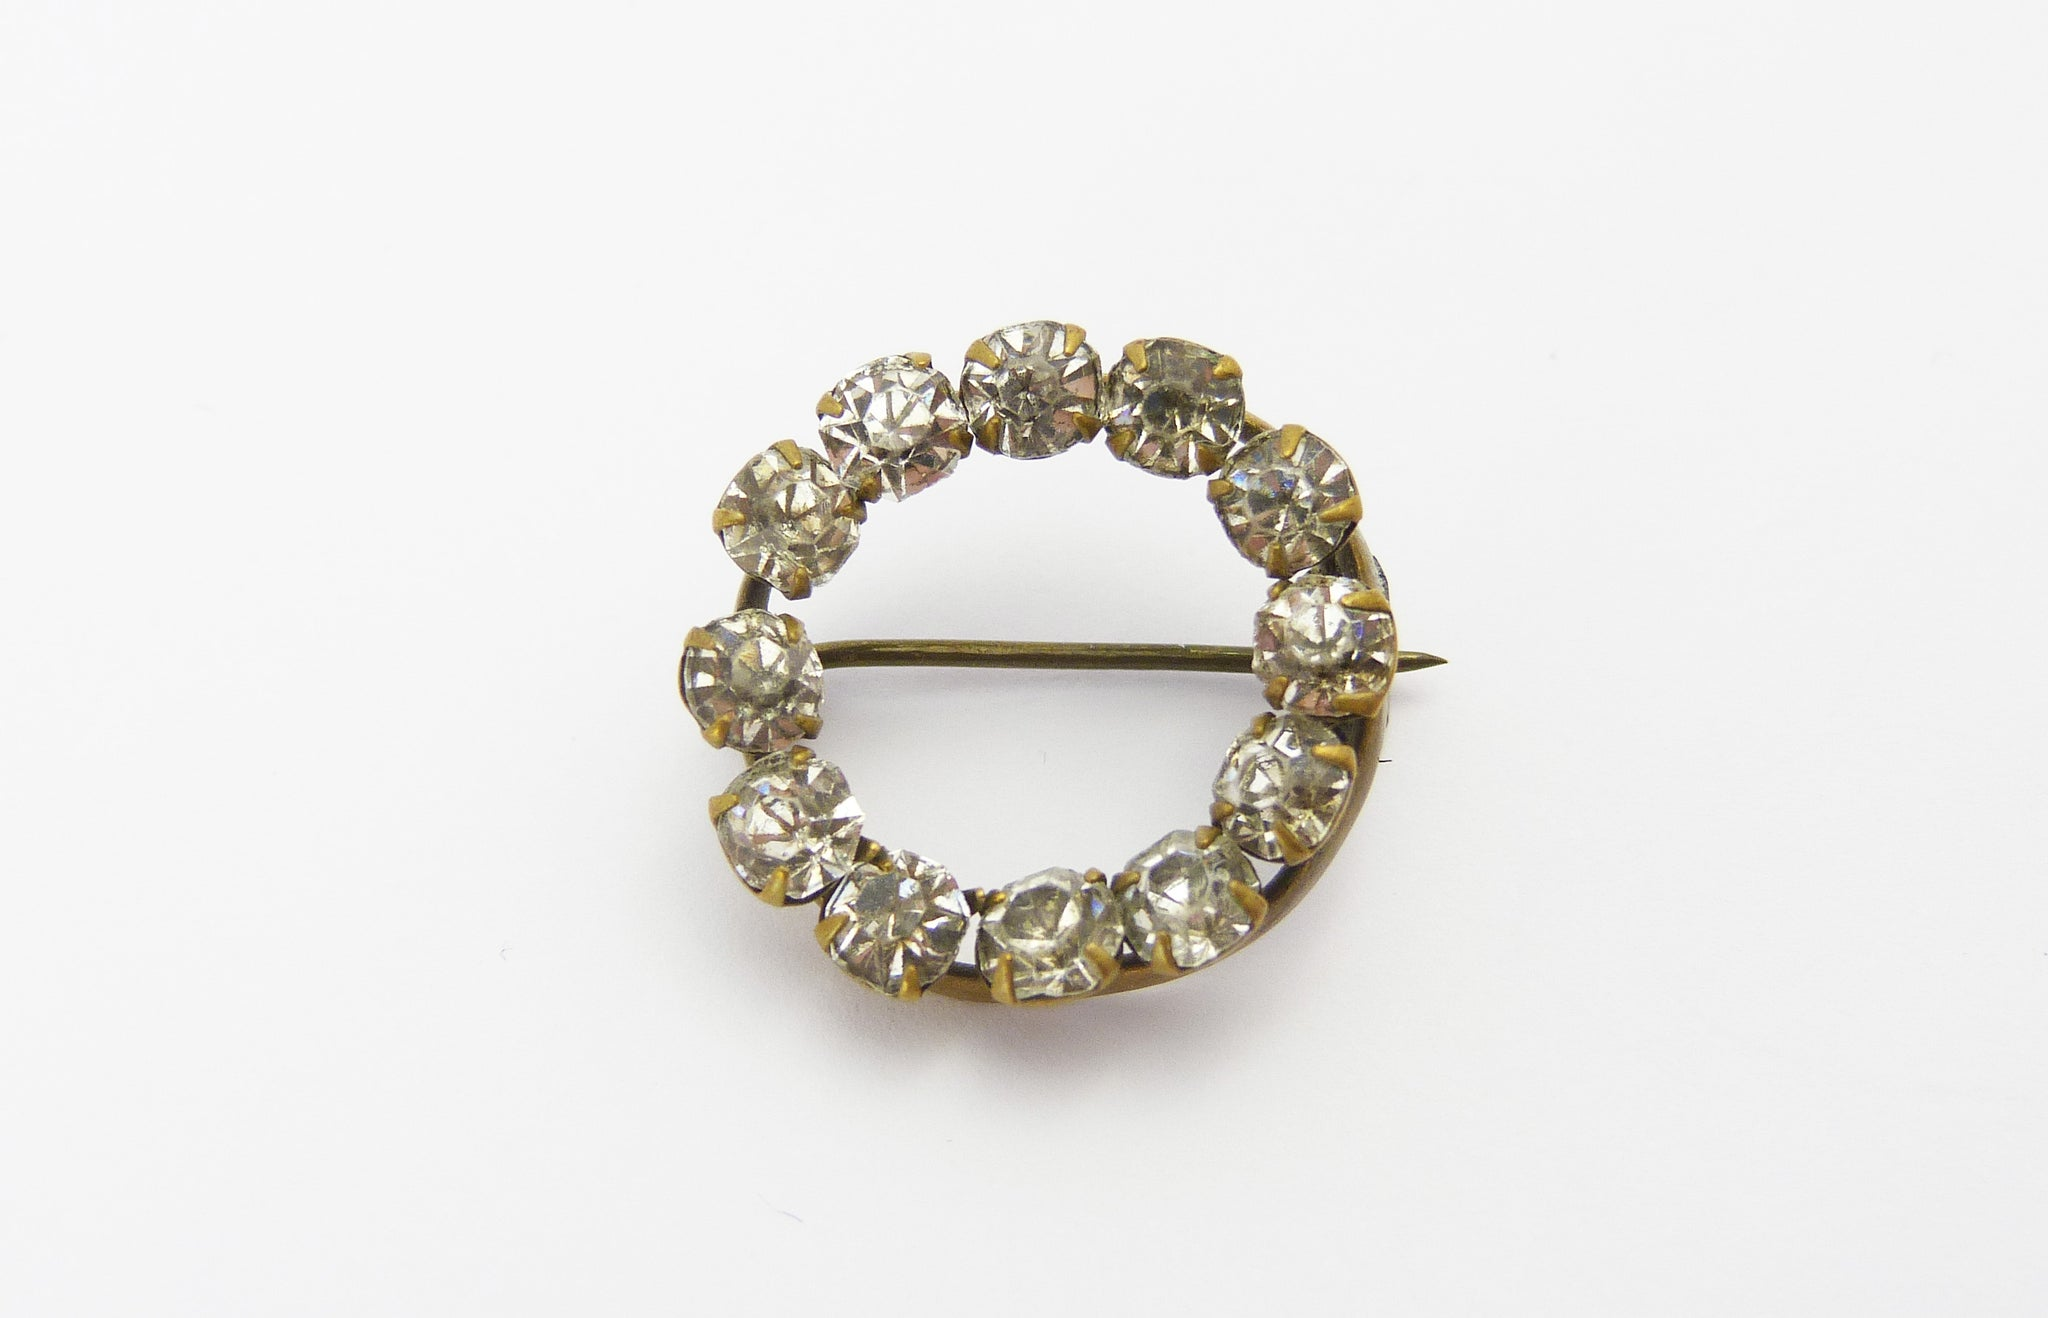 Antique Edwardian Clear Paste Lace Pin Brooch